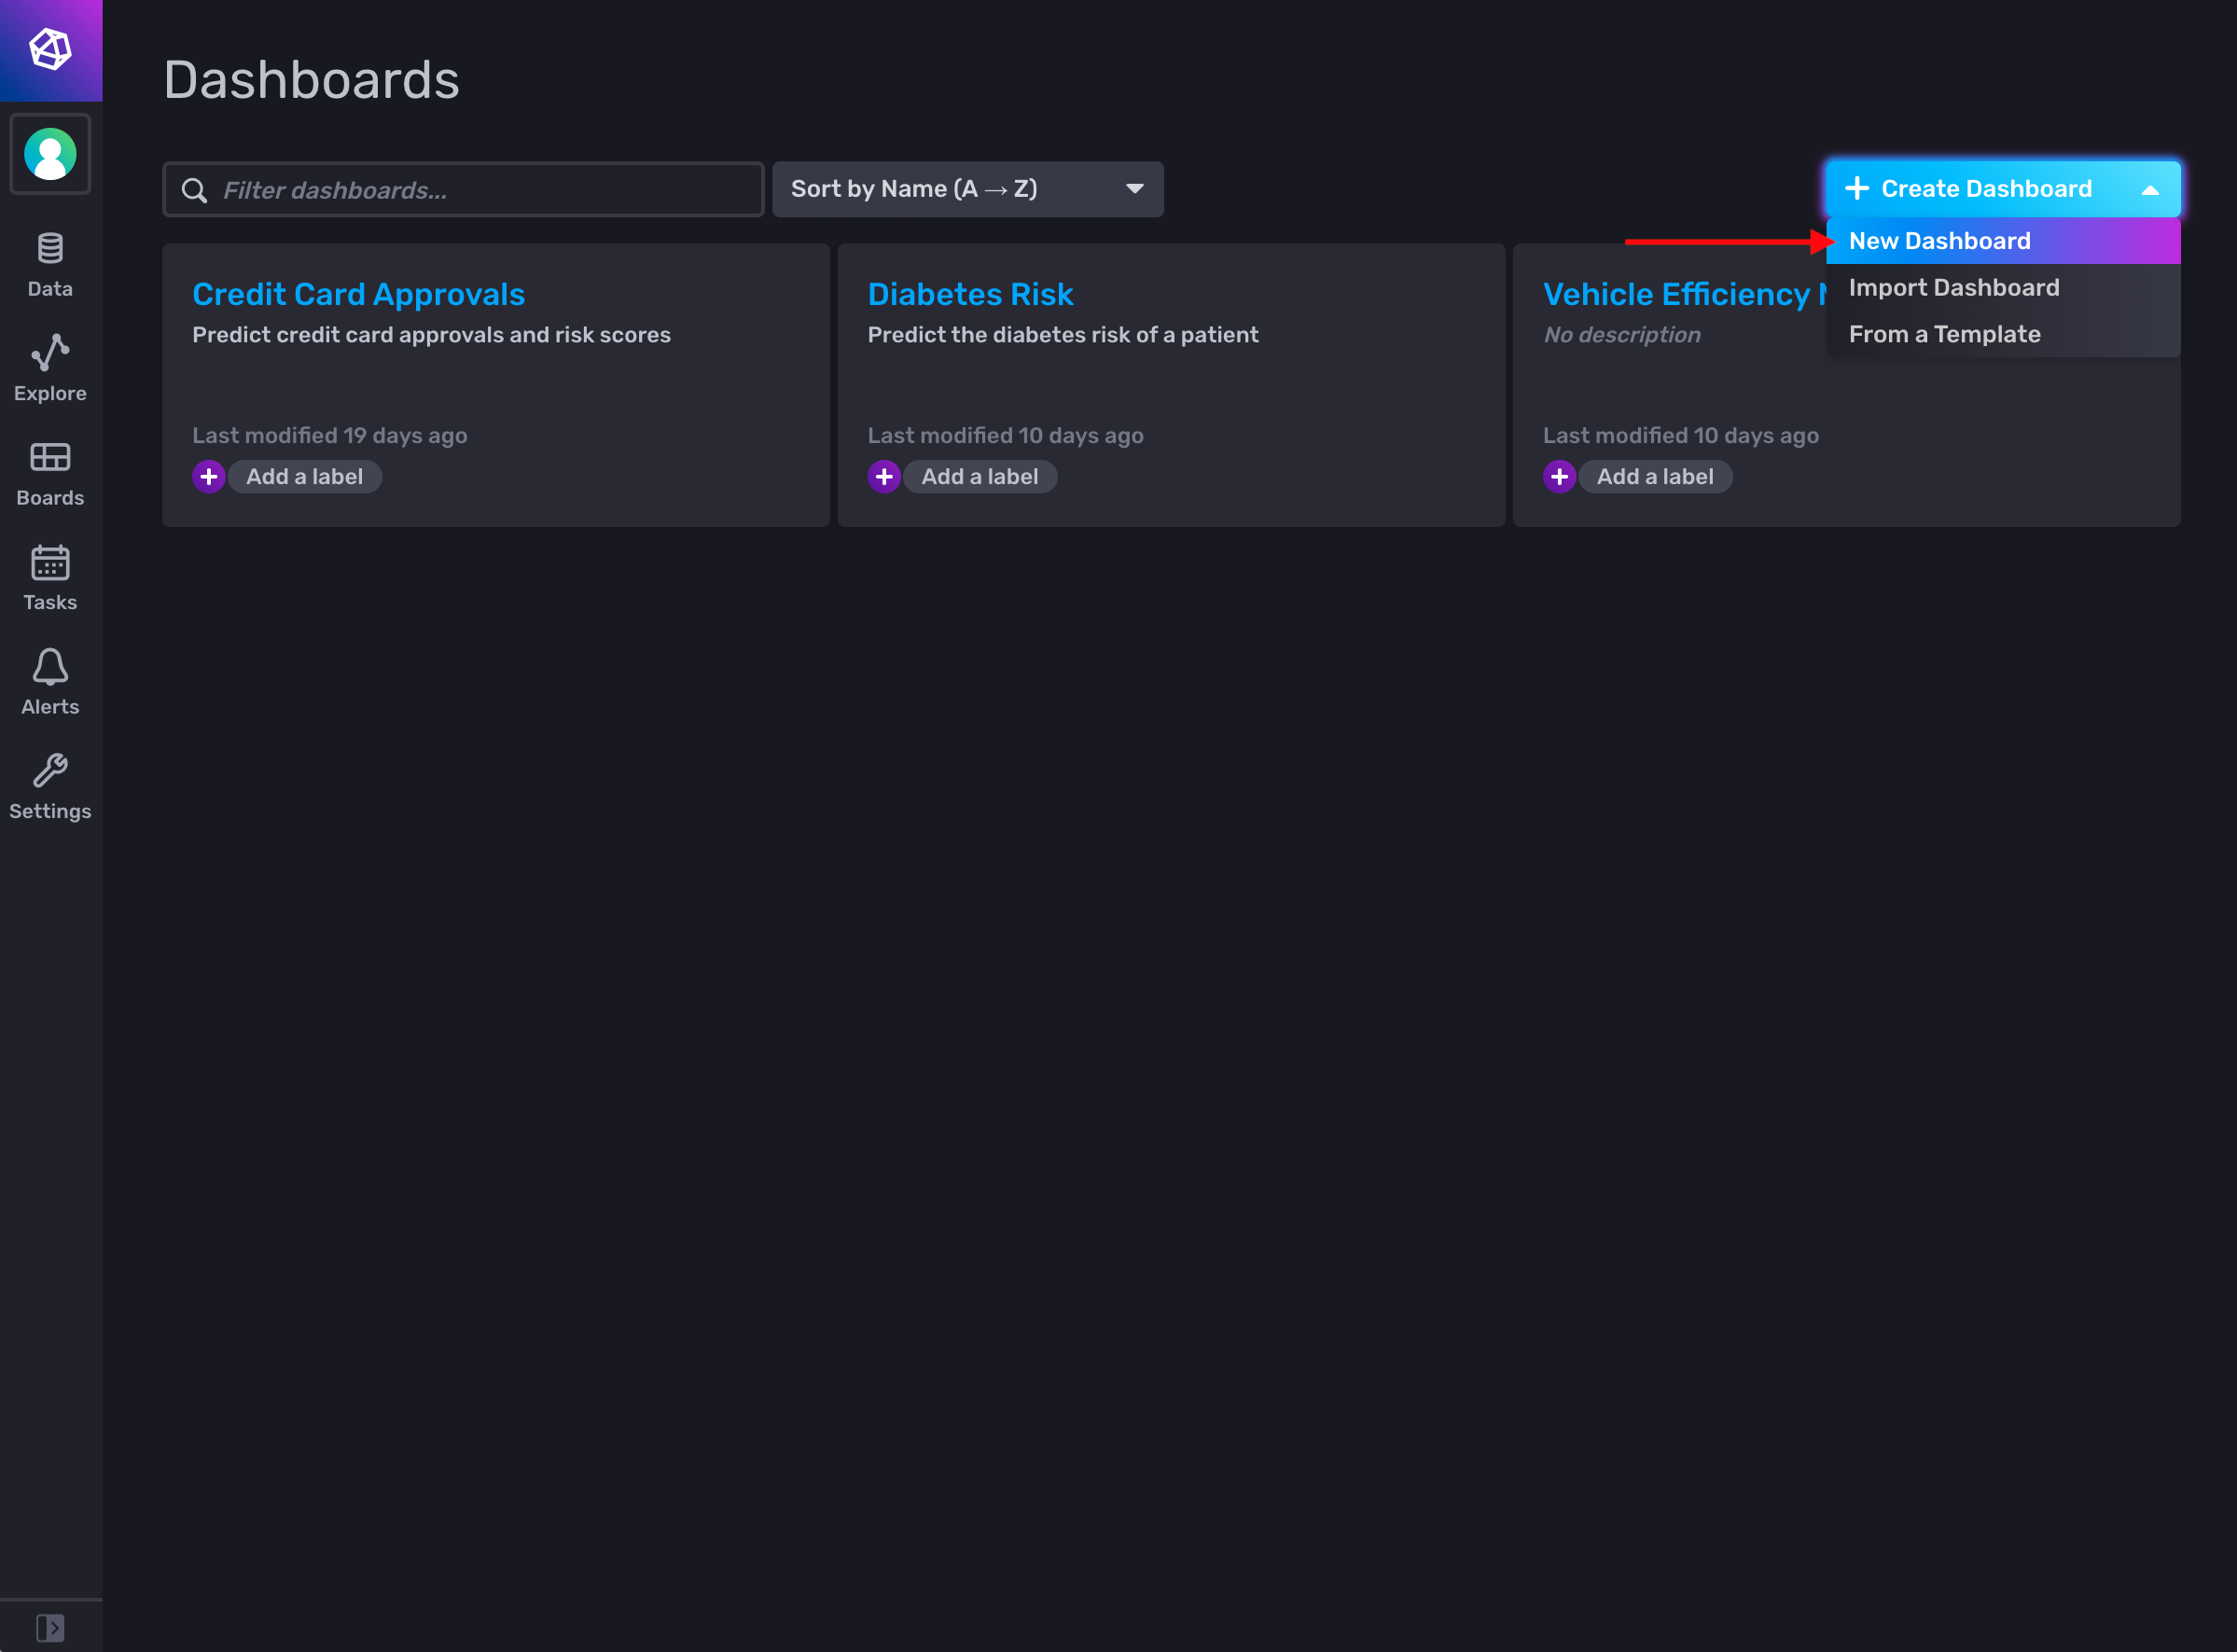 InfluxDB Dashboards page with arrow pointing to new dashboard drop-down